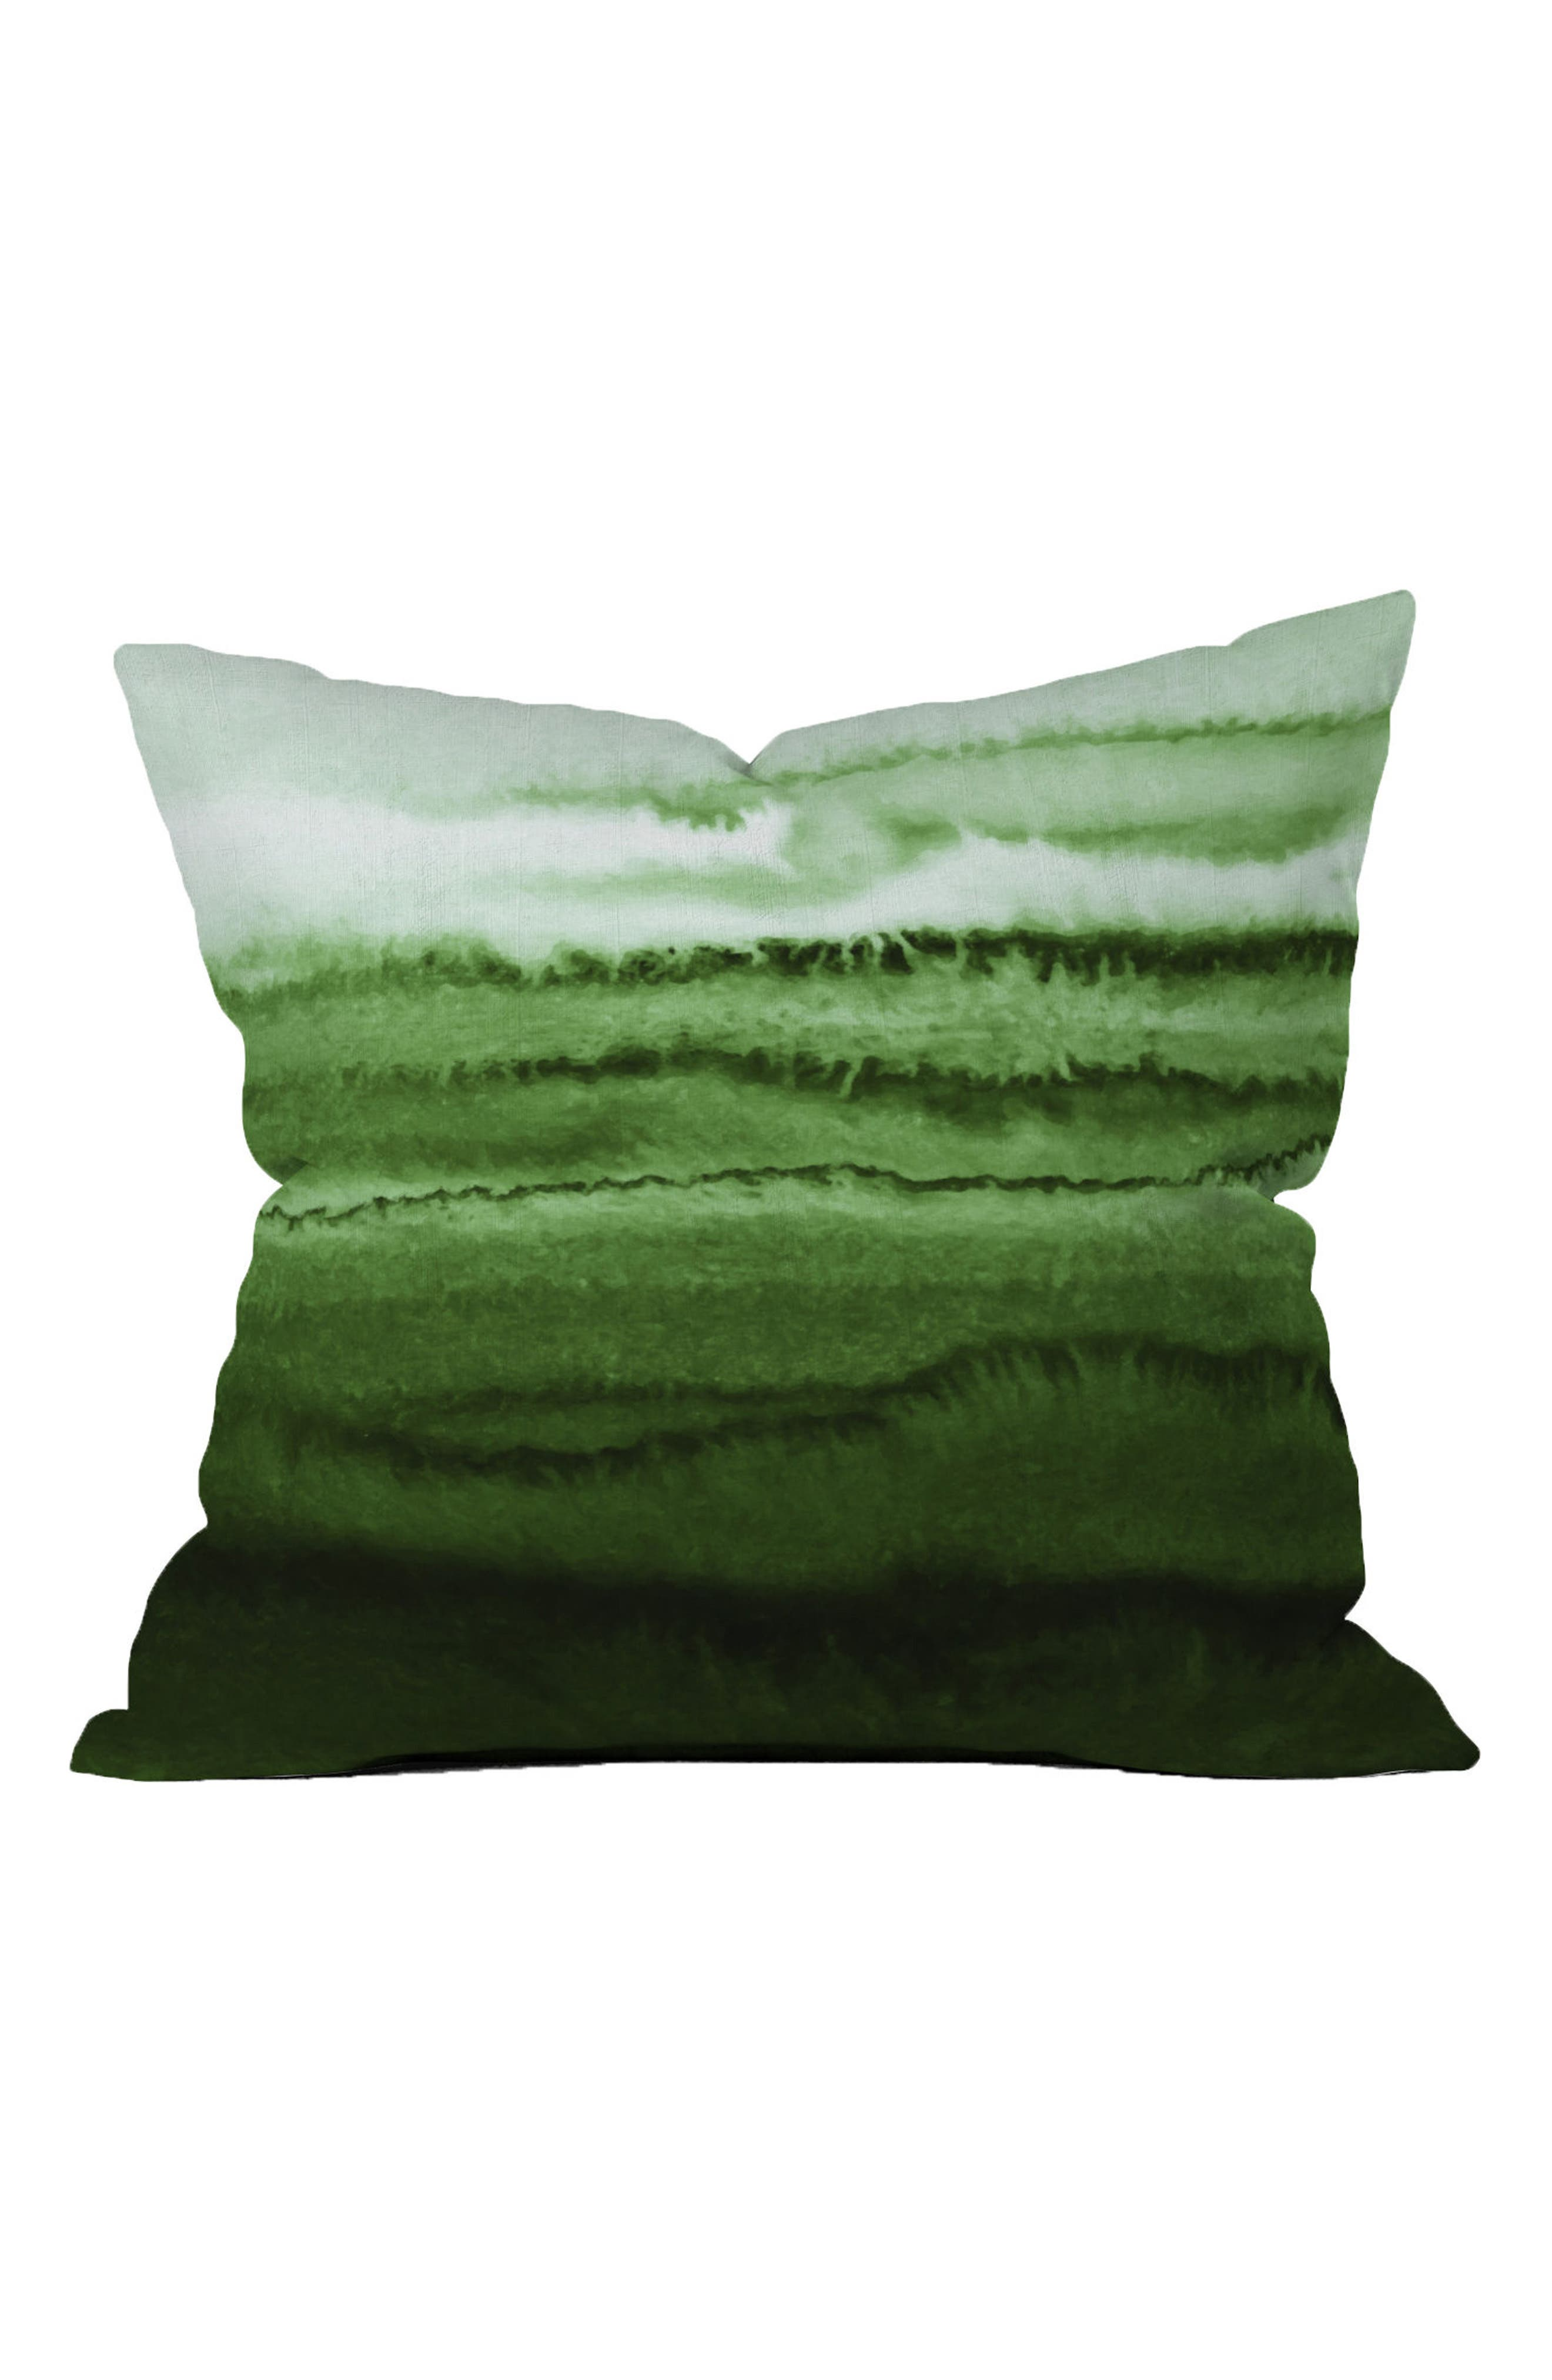 Alternate Image 1 Selected - Deny Designs Monika Strigel Accent Pillow